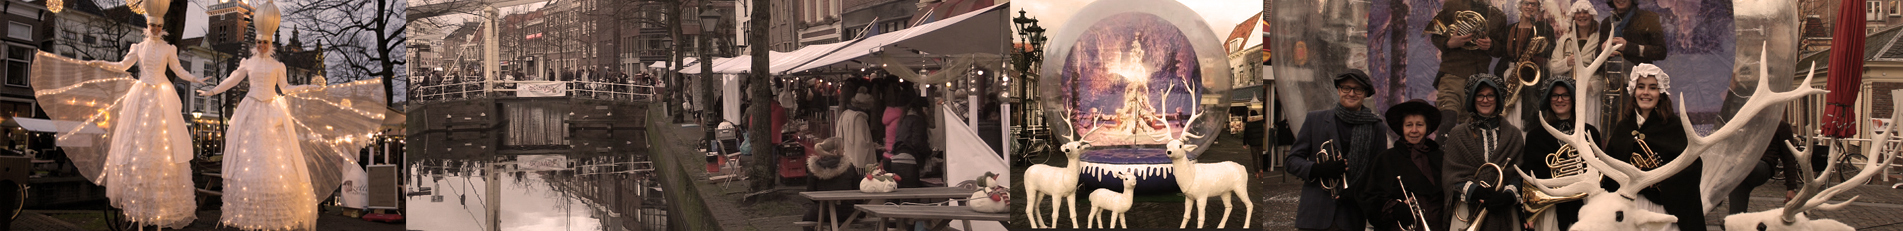 winterfair oude stad